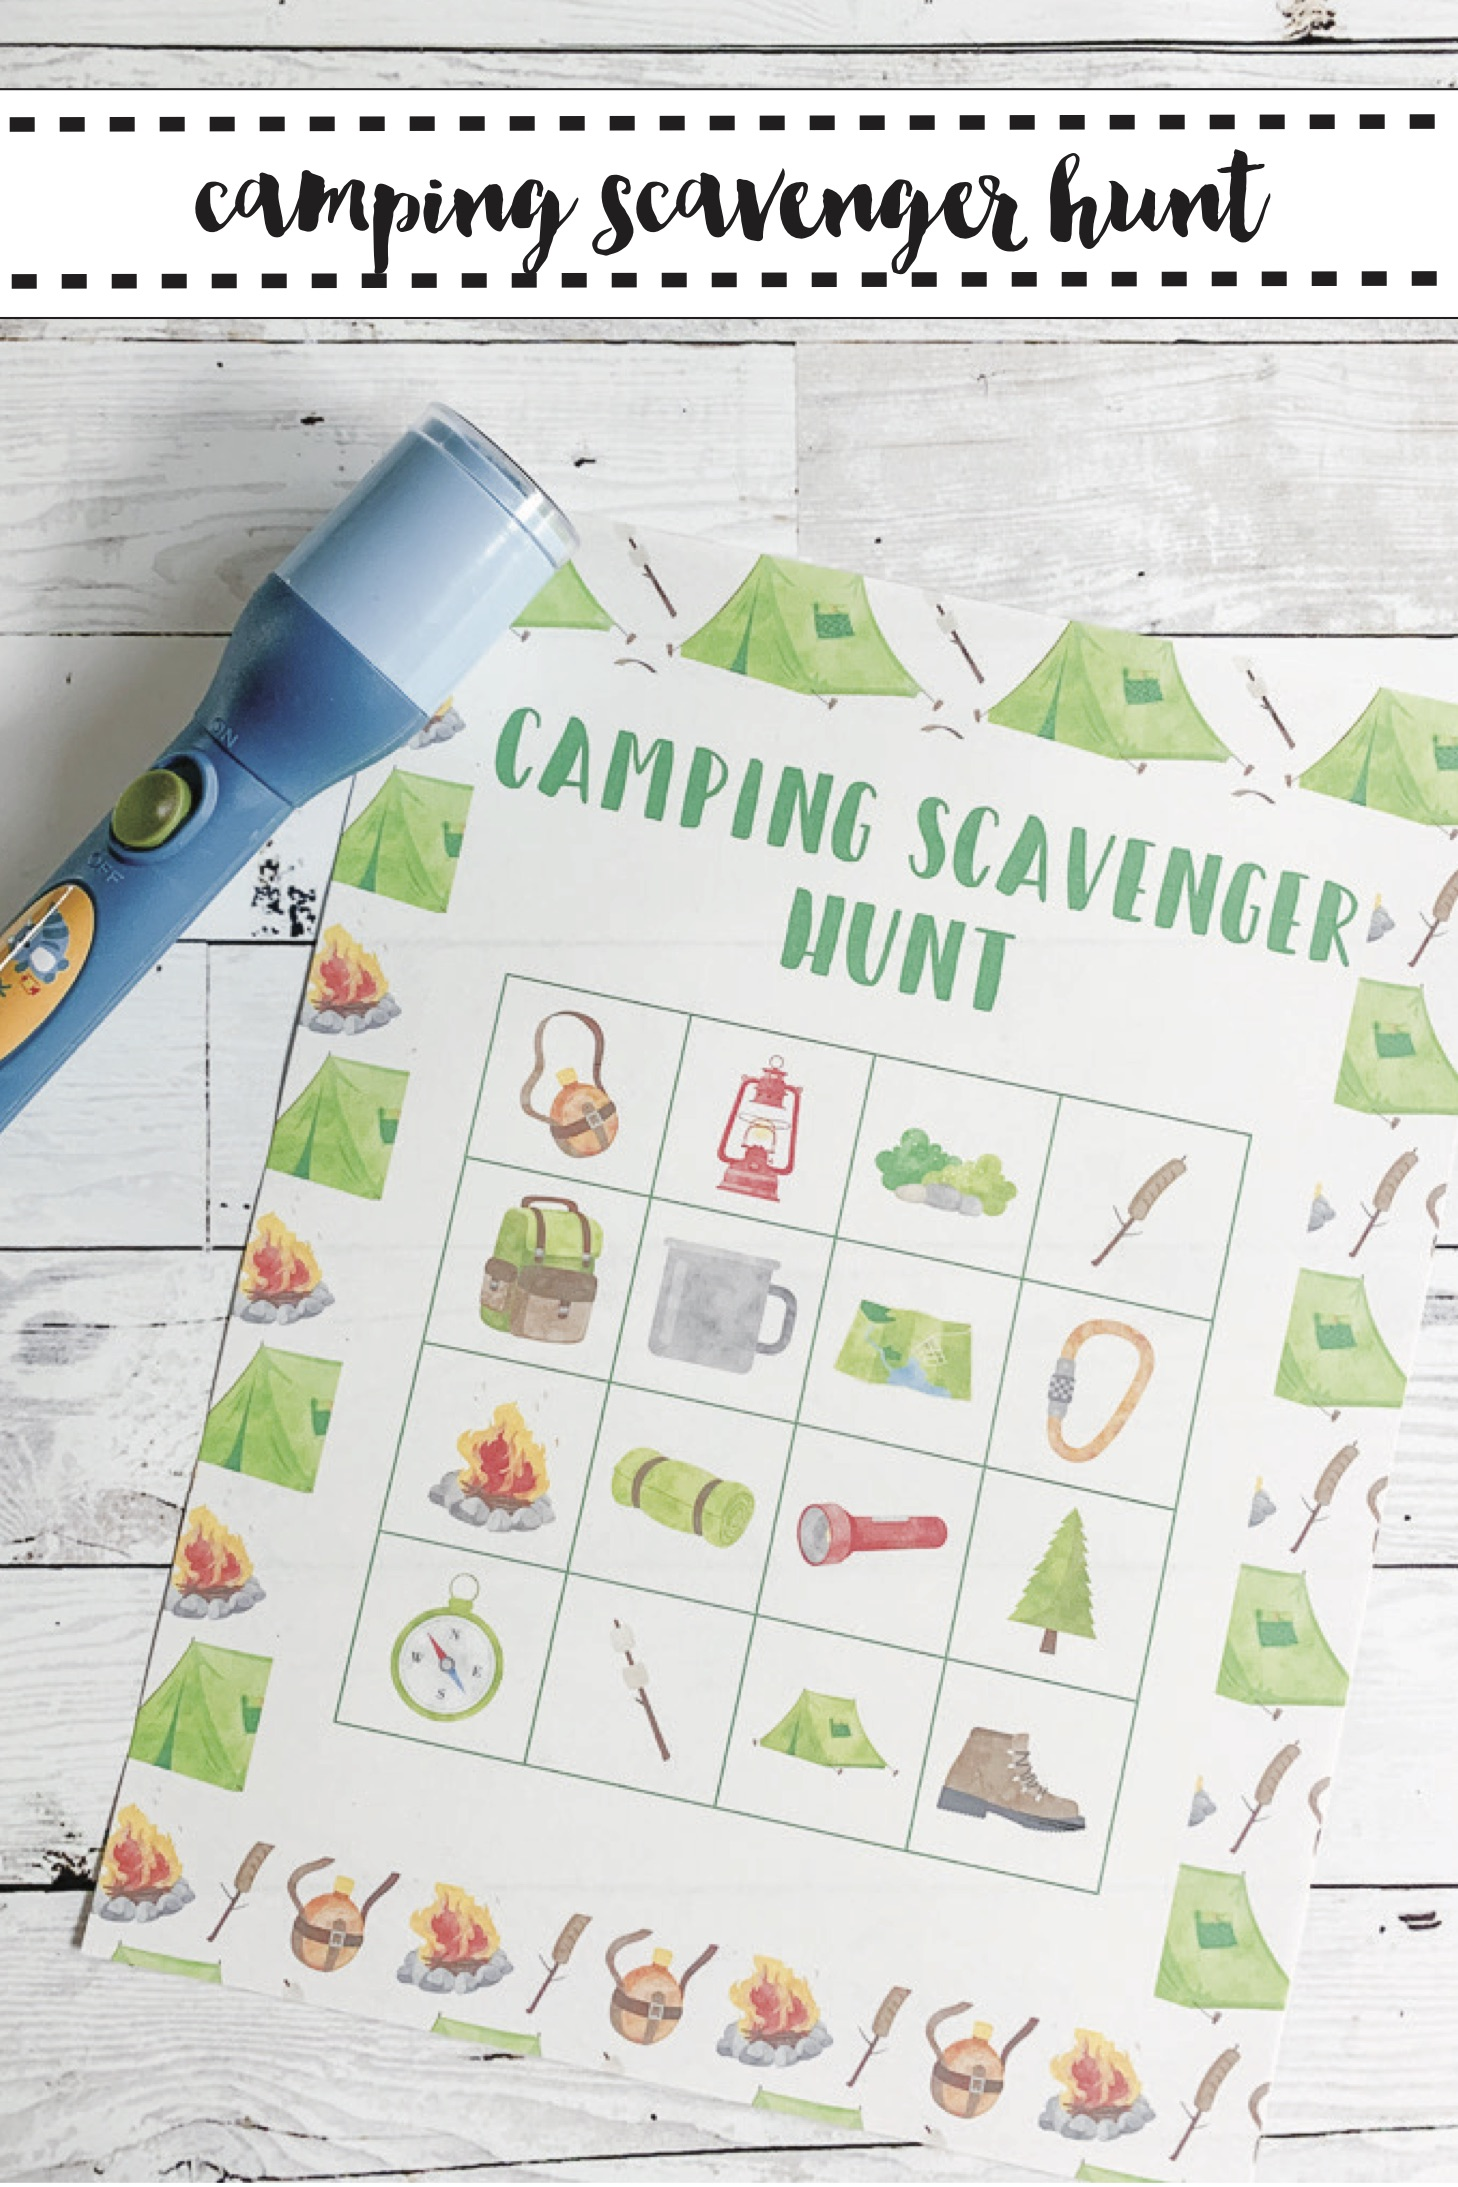 photograph relating to Printable Scavenger Hunt called Tenting Scavenger Hunt Printable - Each day Occasion Journal